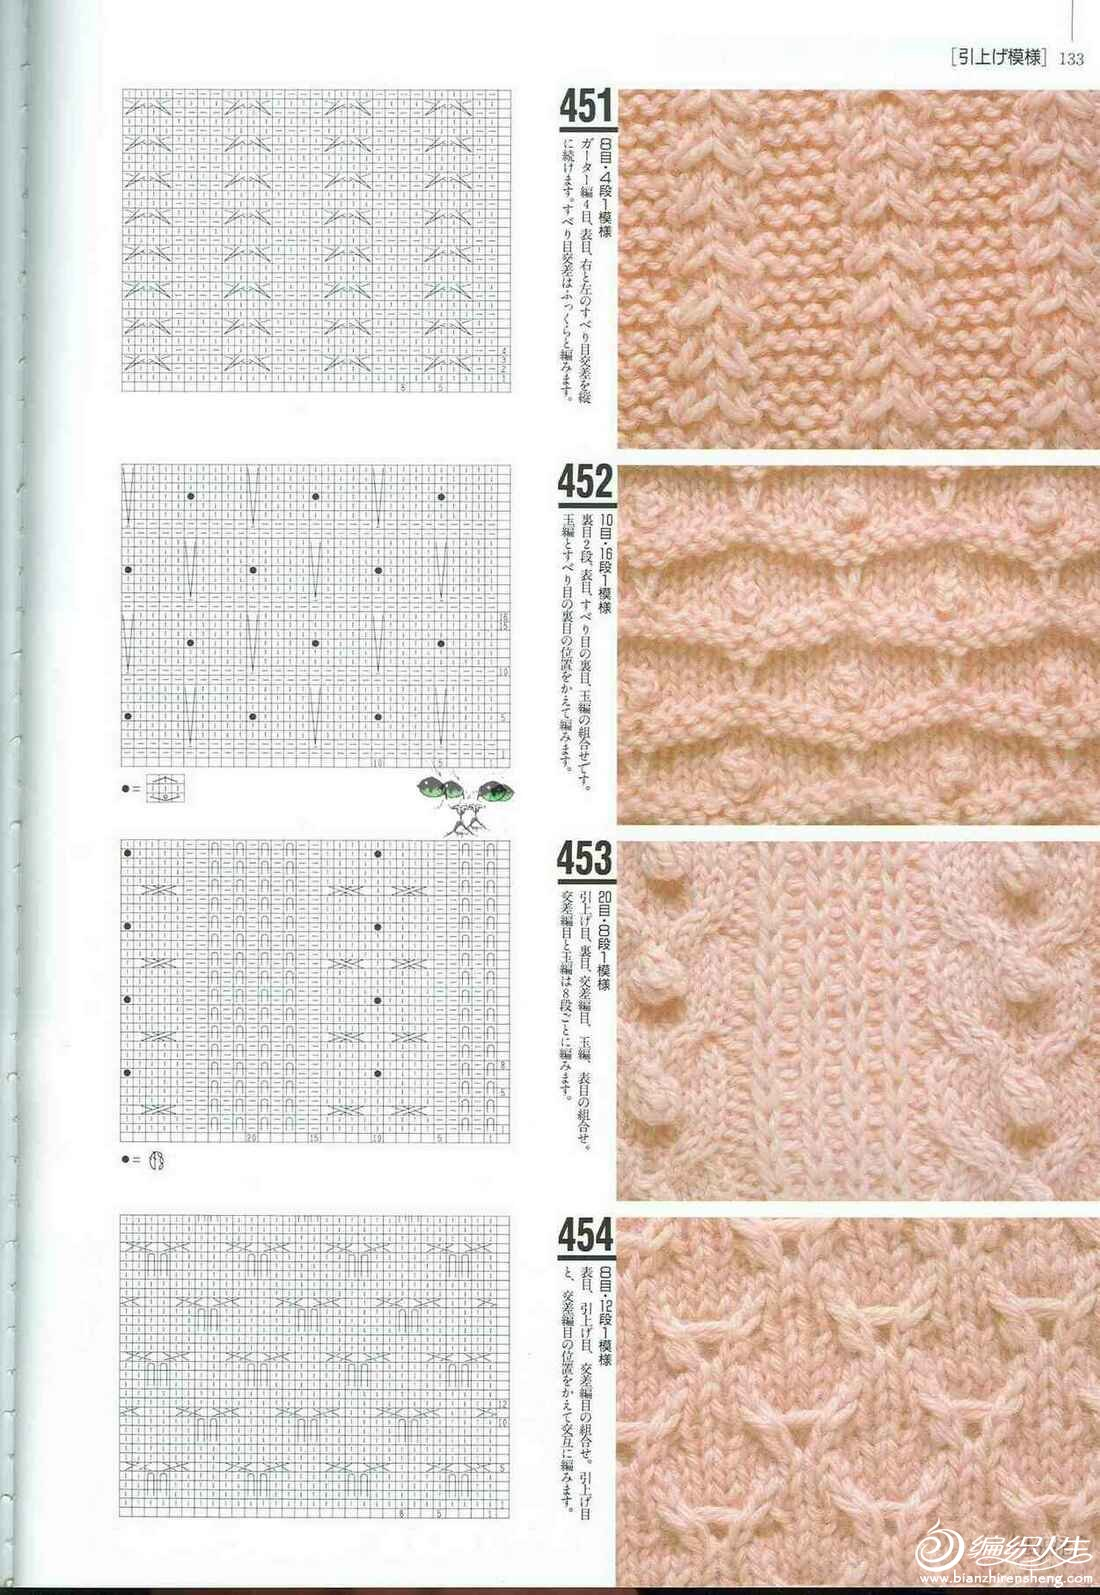 Knitting Patterns 500 130.jpg